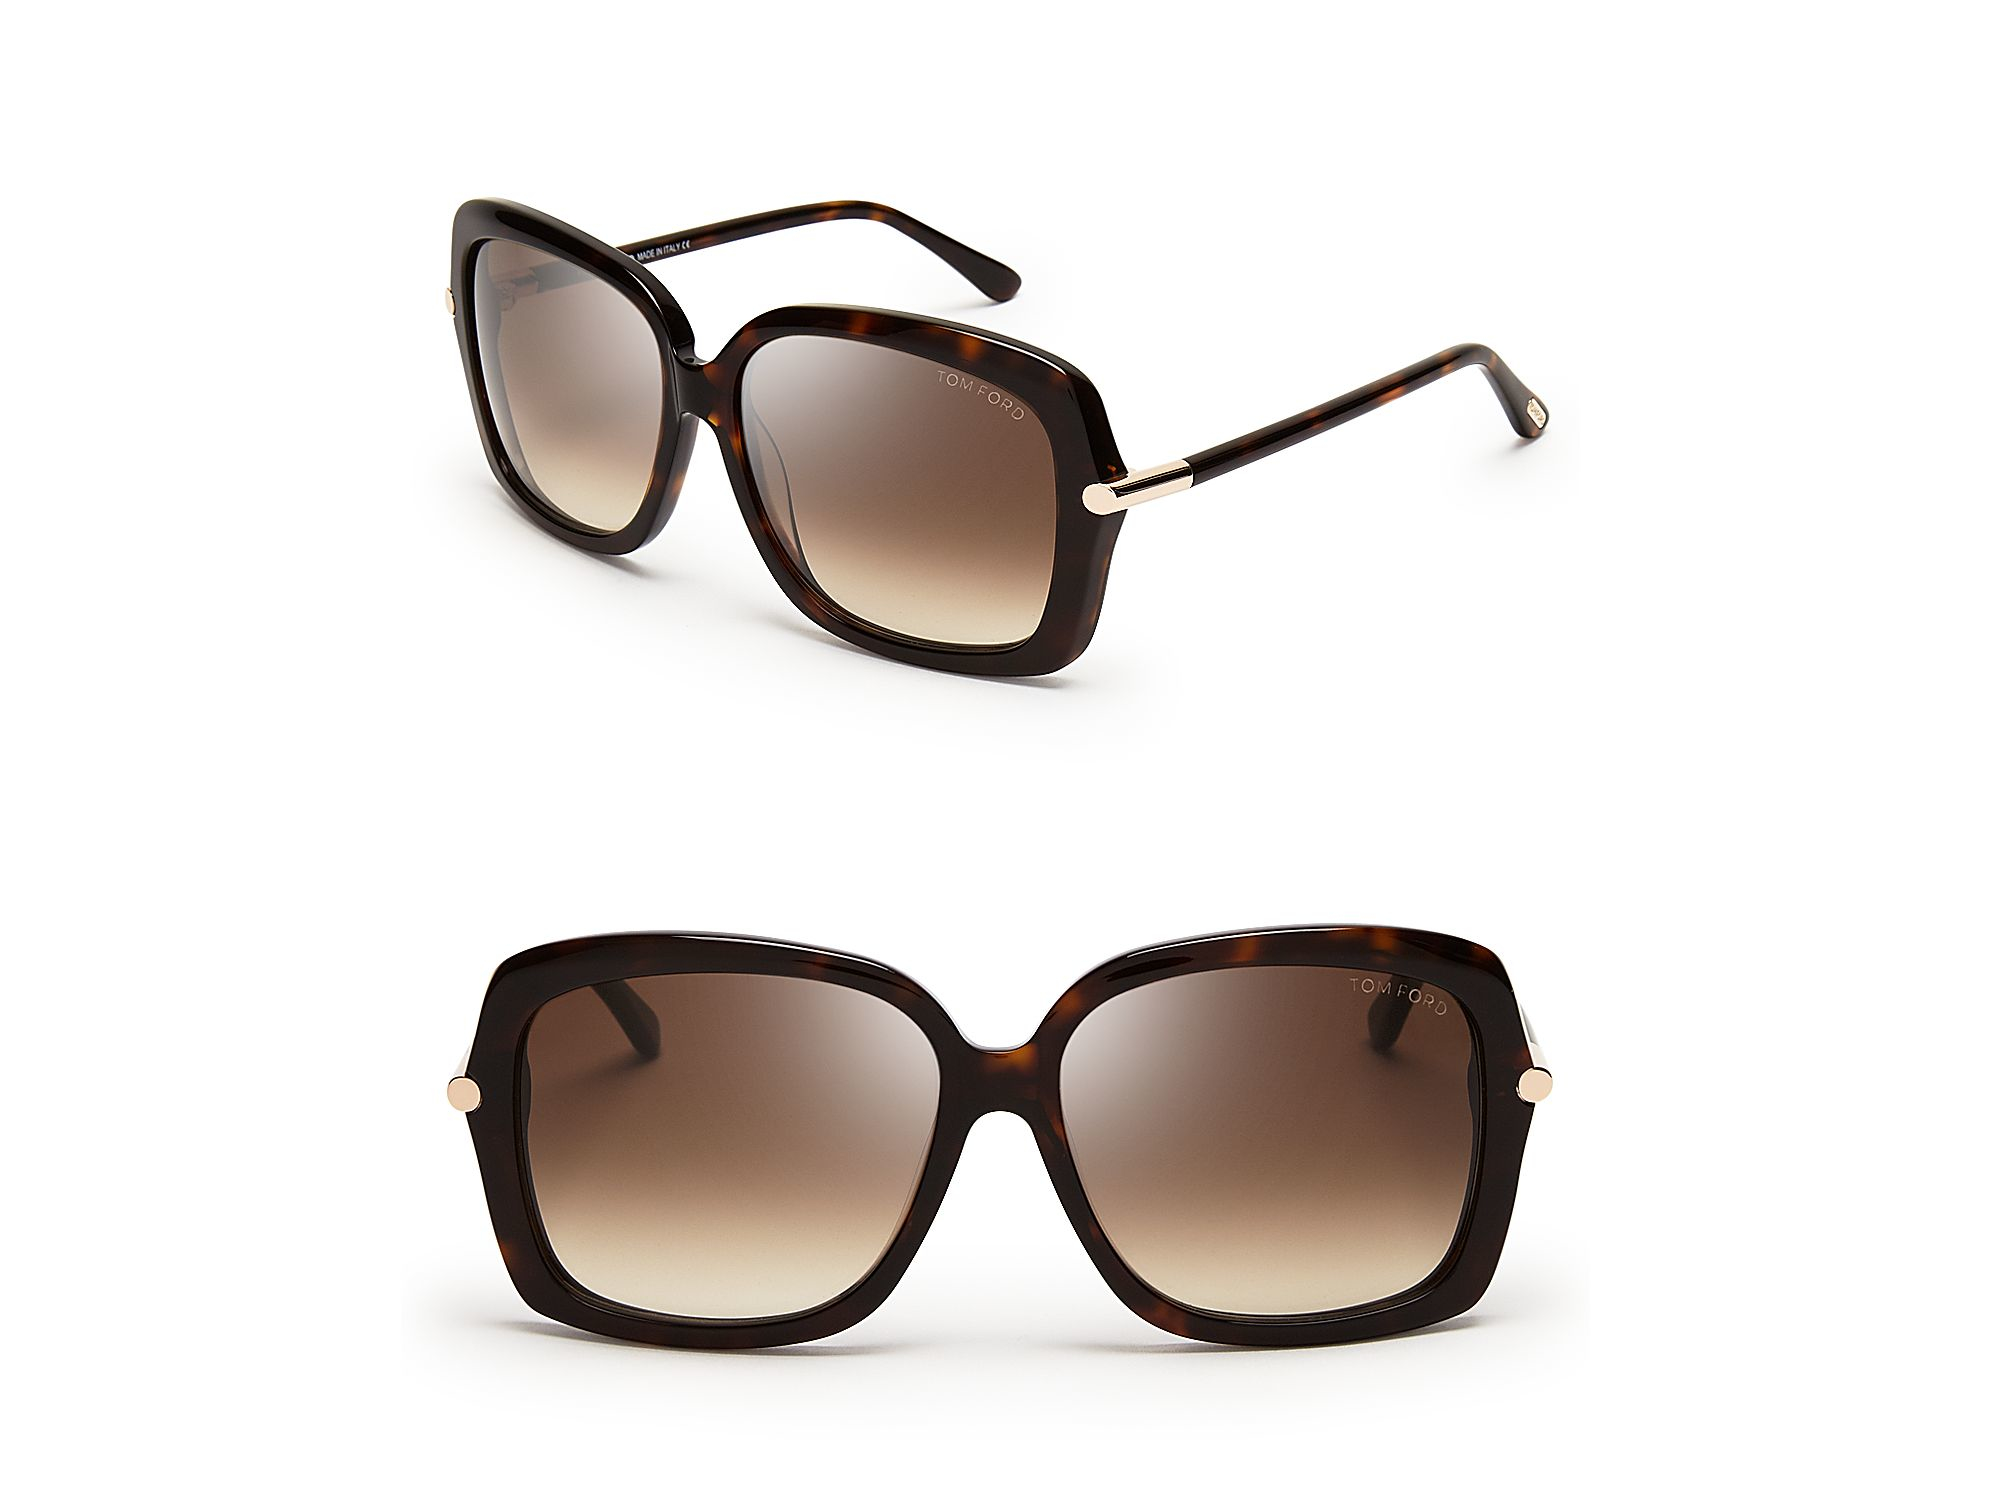 9bccd0f2a7ae3 Lyst - Tom Ford Paloma Oversized Sunglasses in Brown